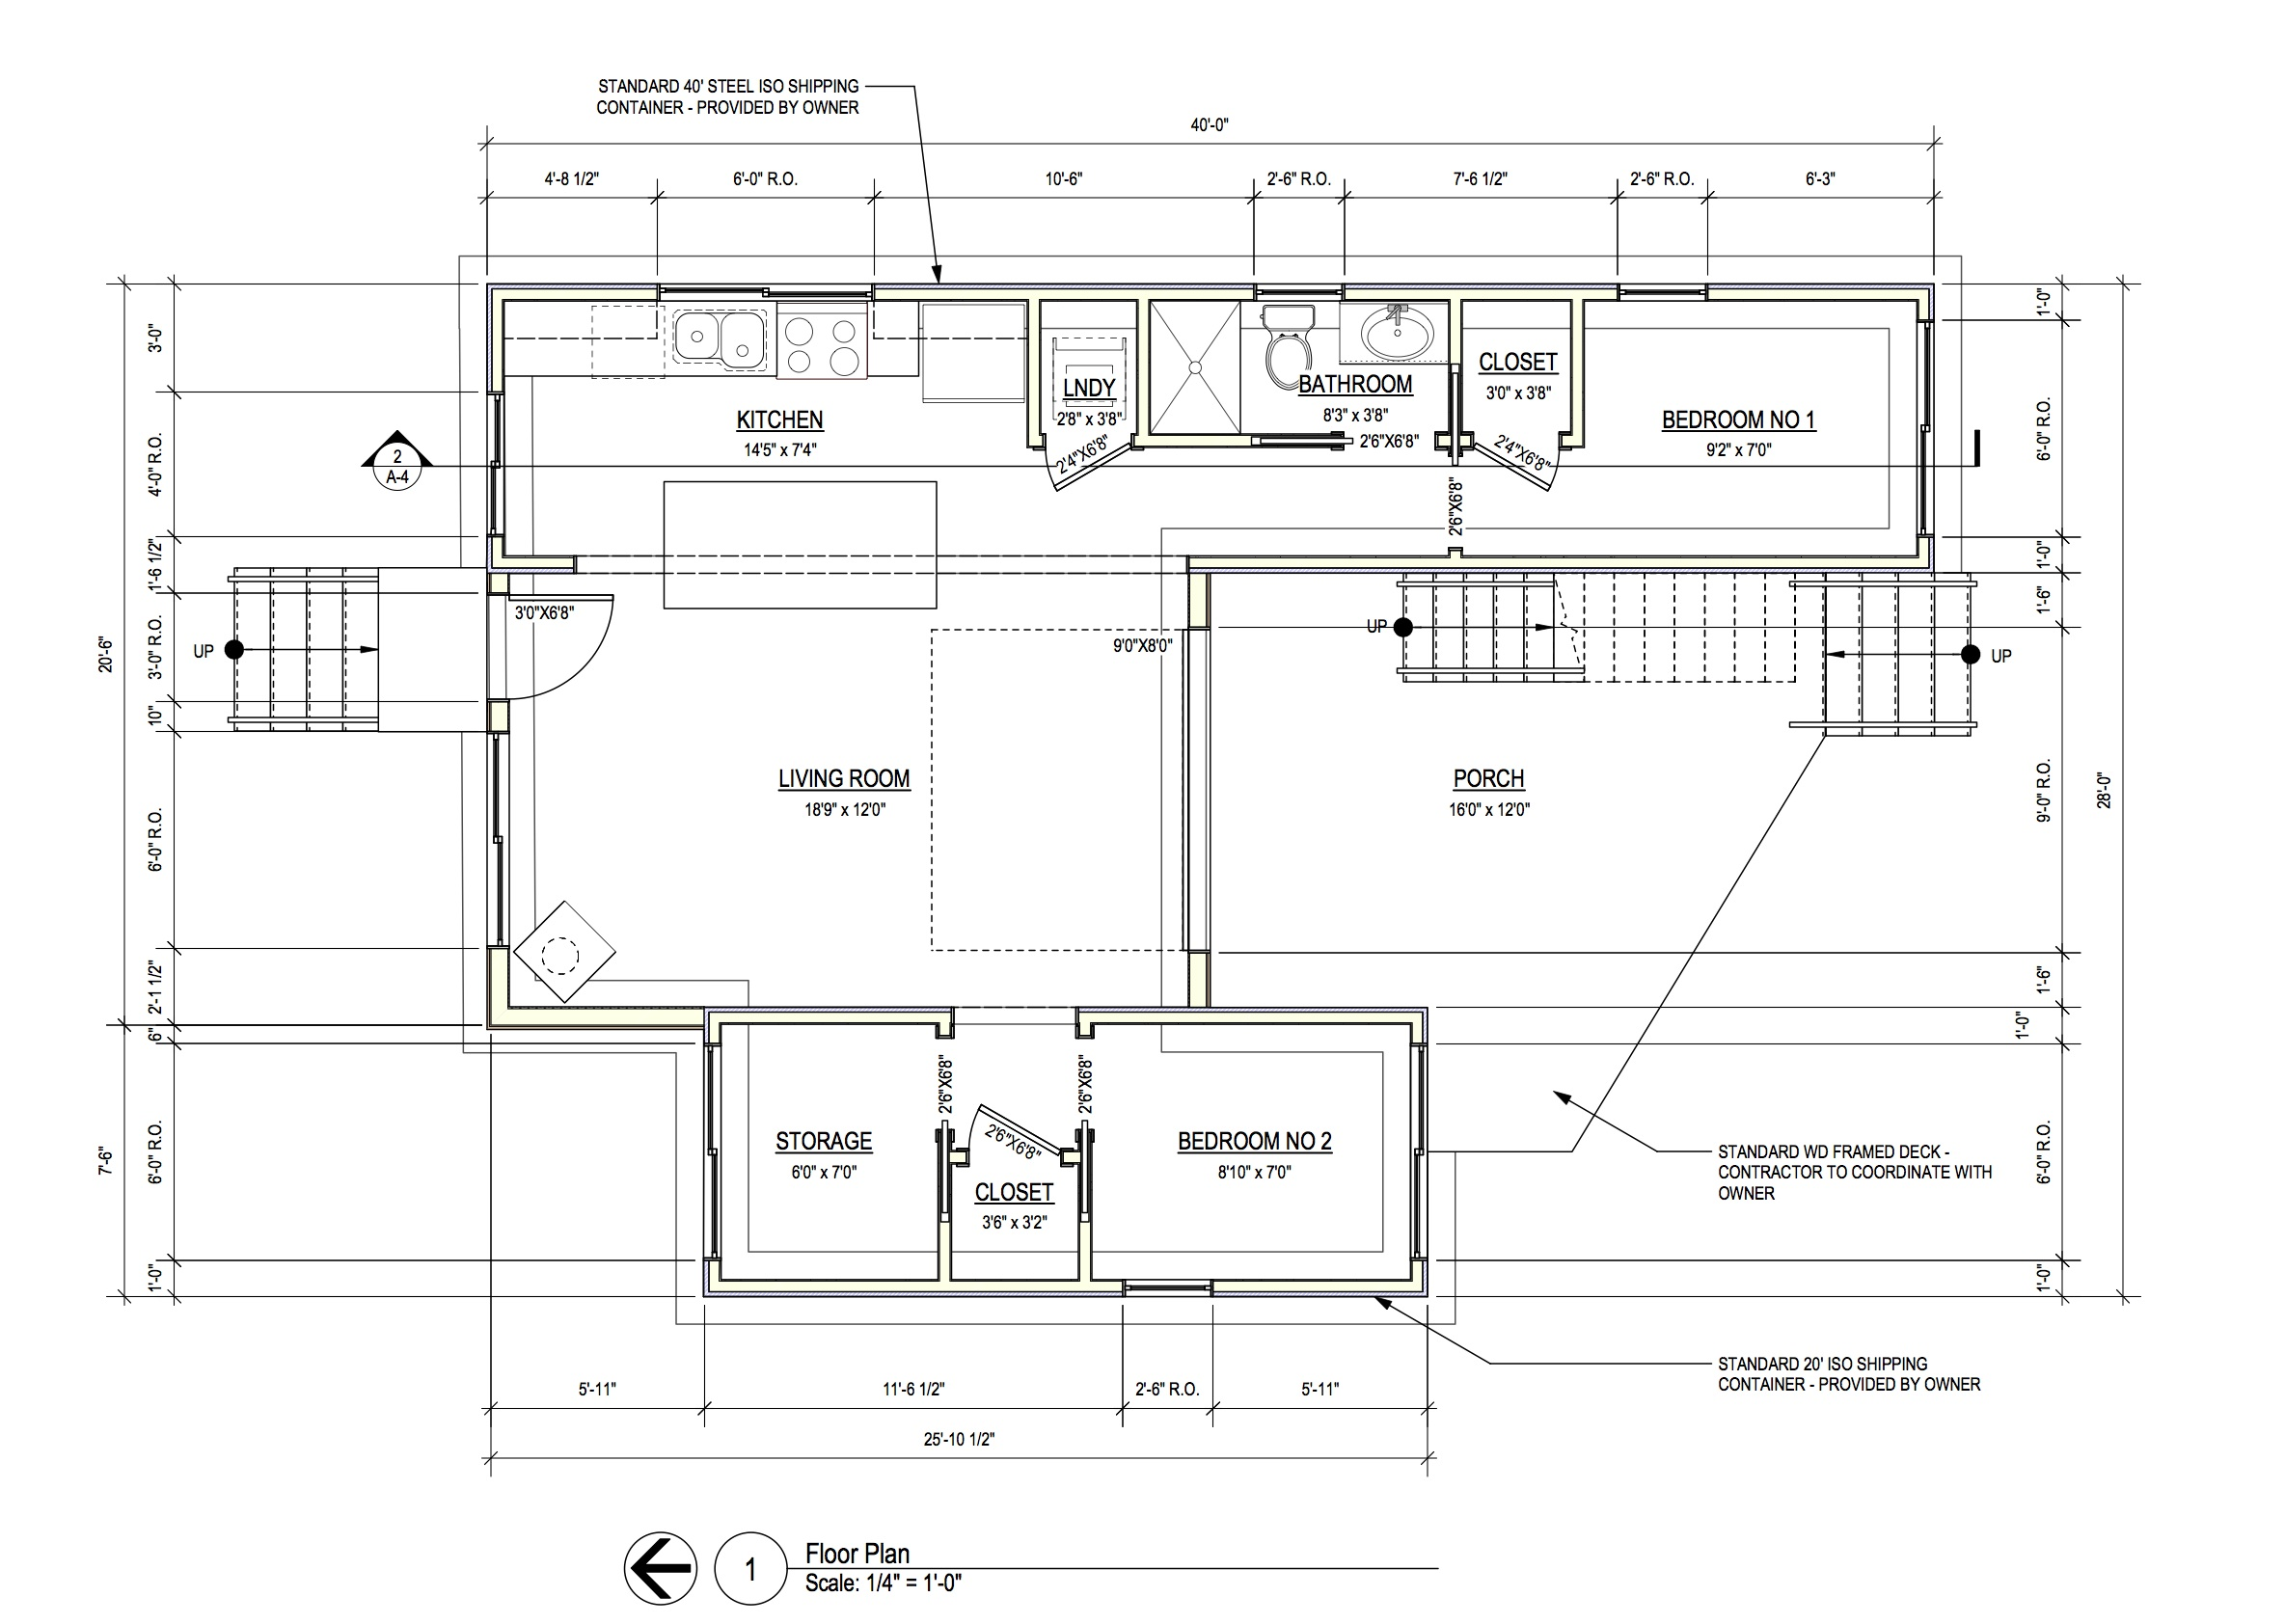 Best Kitchen Gallery: Container Living Plan Get Container Architecture Floor Plans of Container Architecture Plans on rachelxblog.com